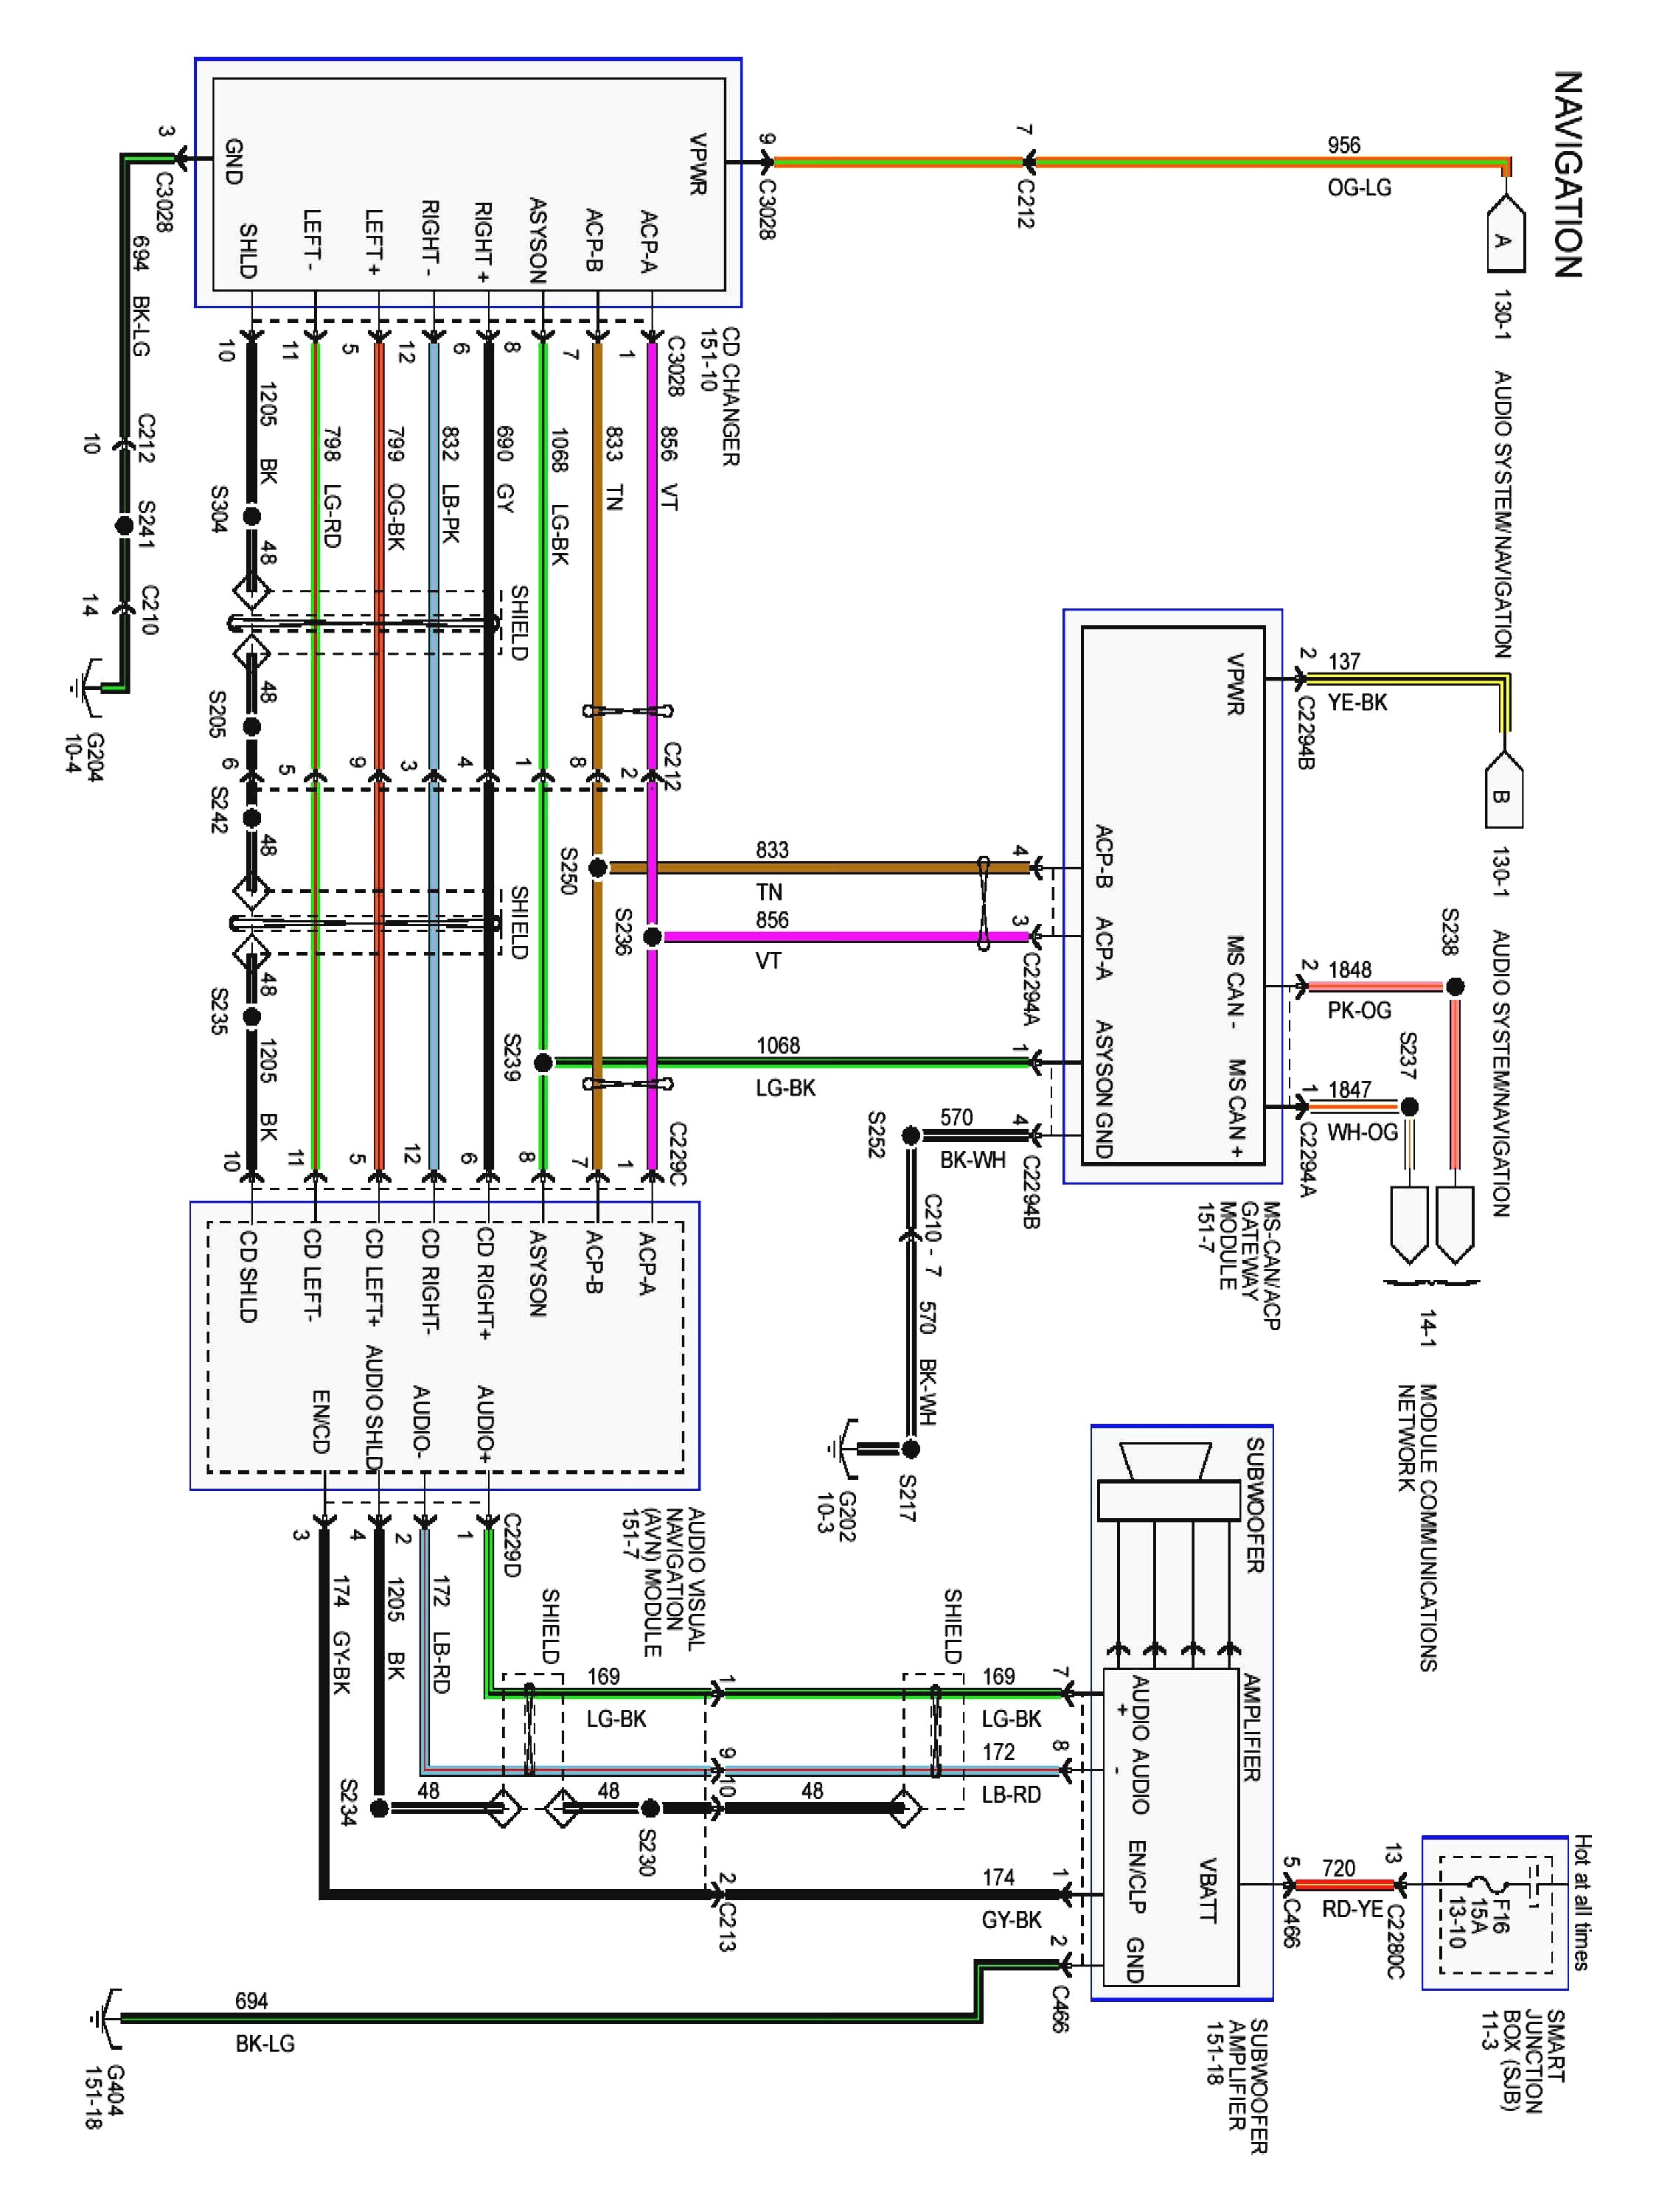 Miraculous Ford Transit Connect Fuse Box Diagram On 2005 Ford Escape Pcm Wiring Wiring Cloud Intelaidewilluminateatxorg